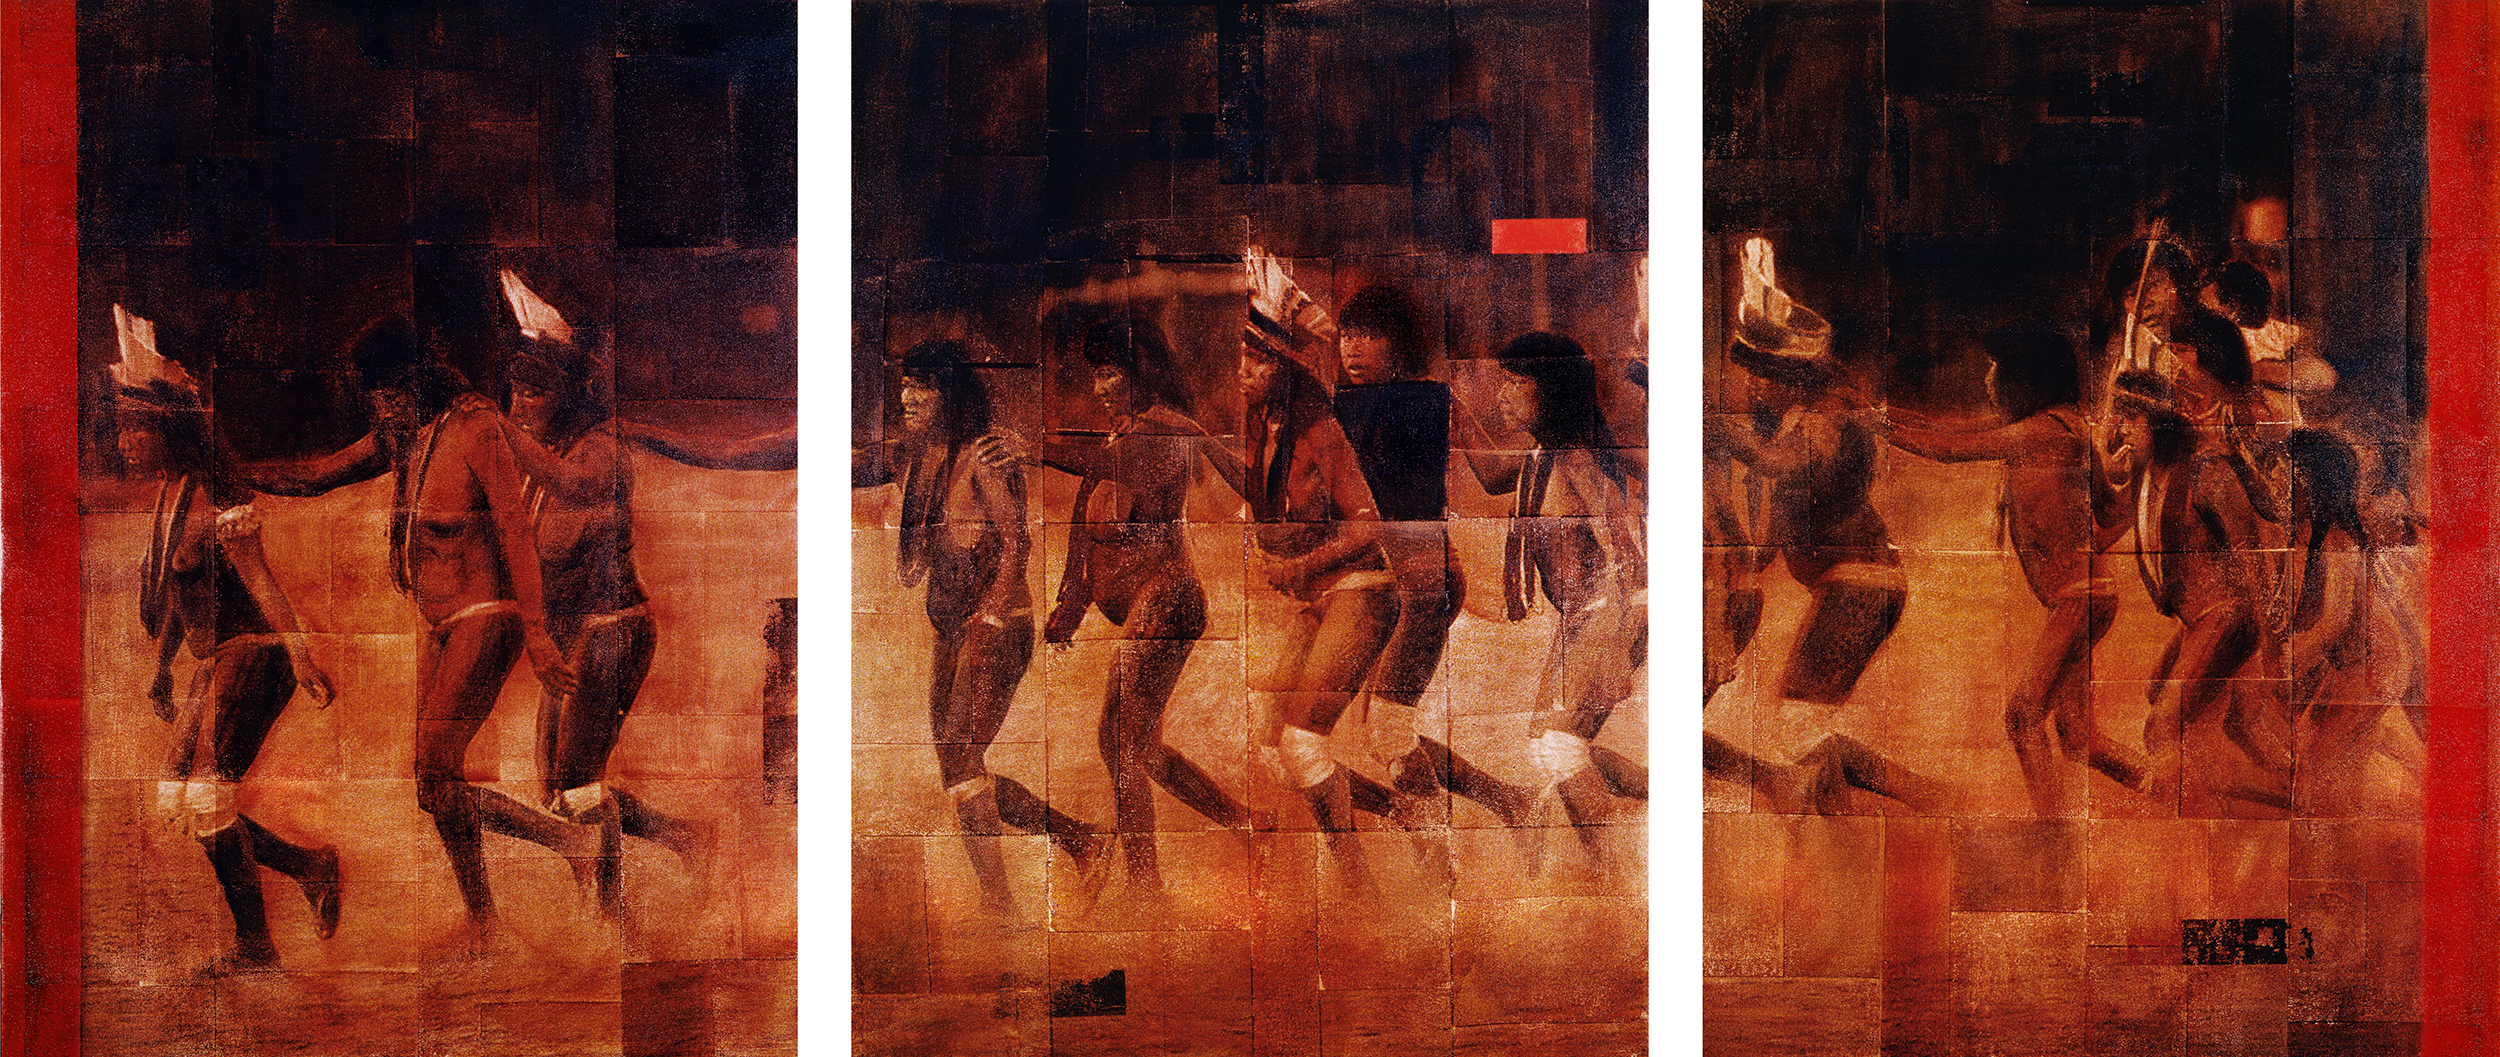 Linedance Suya Triptych  Phototransfer / Oil on Canvas 320 x 142 cm / 126 x 56 in Collection of Kristin & Andy Jacob / Arizona 1998